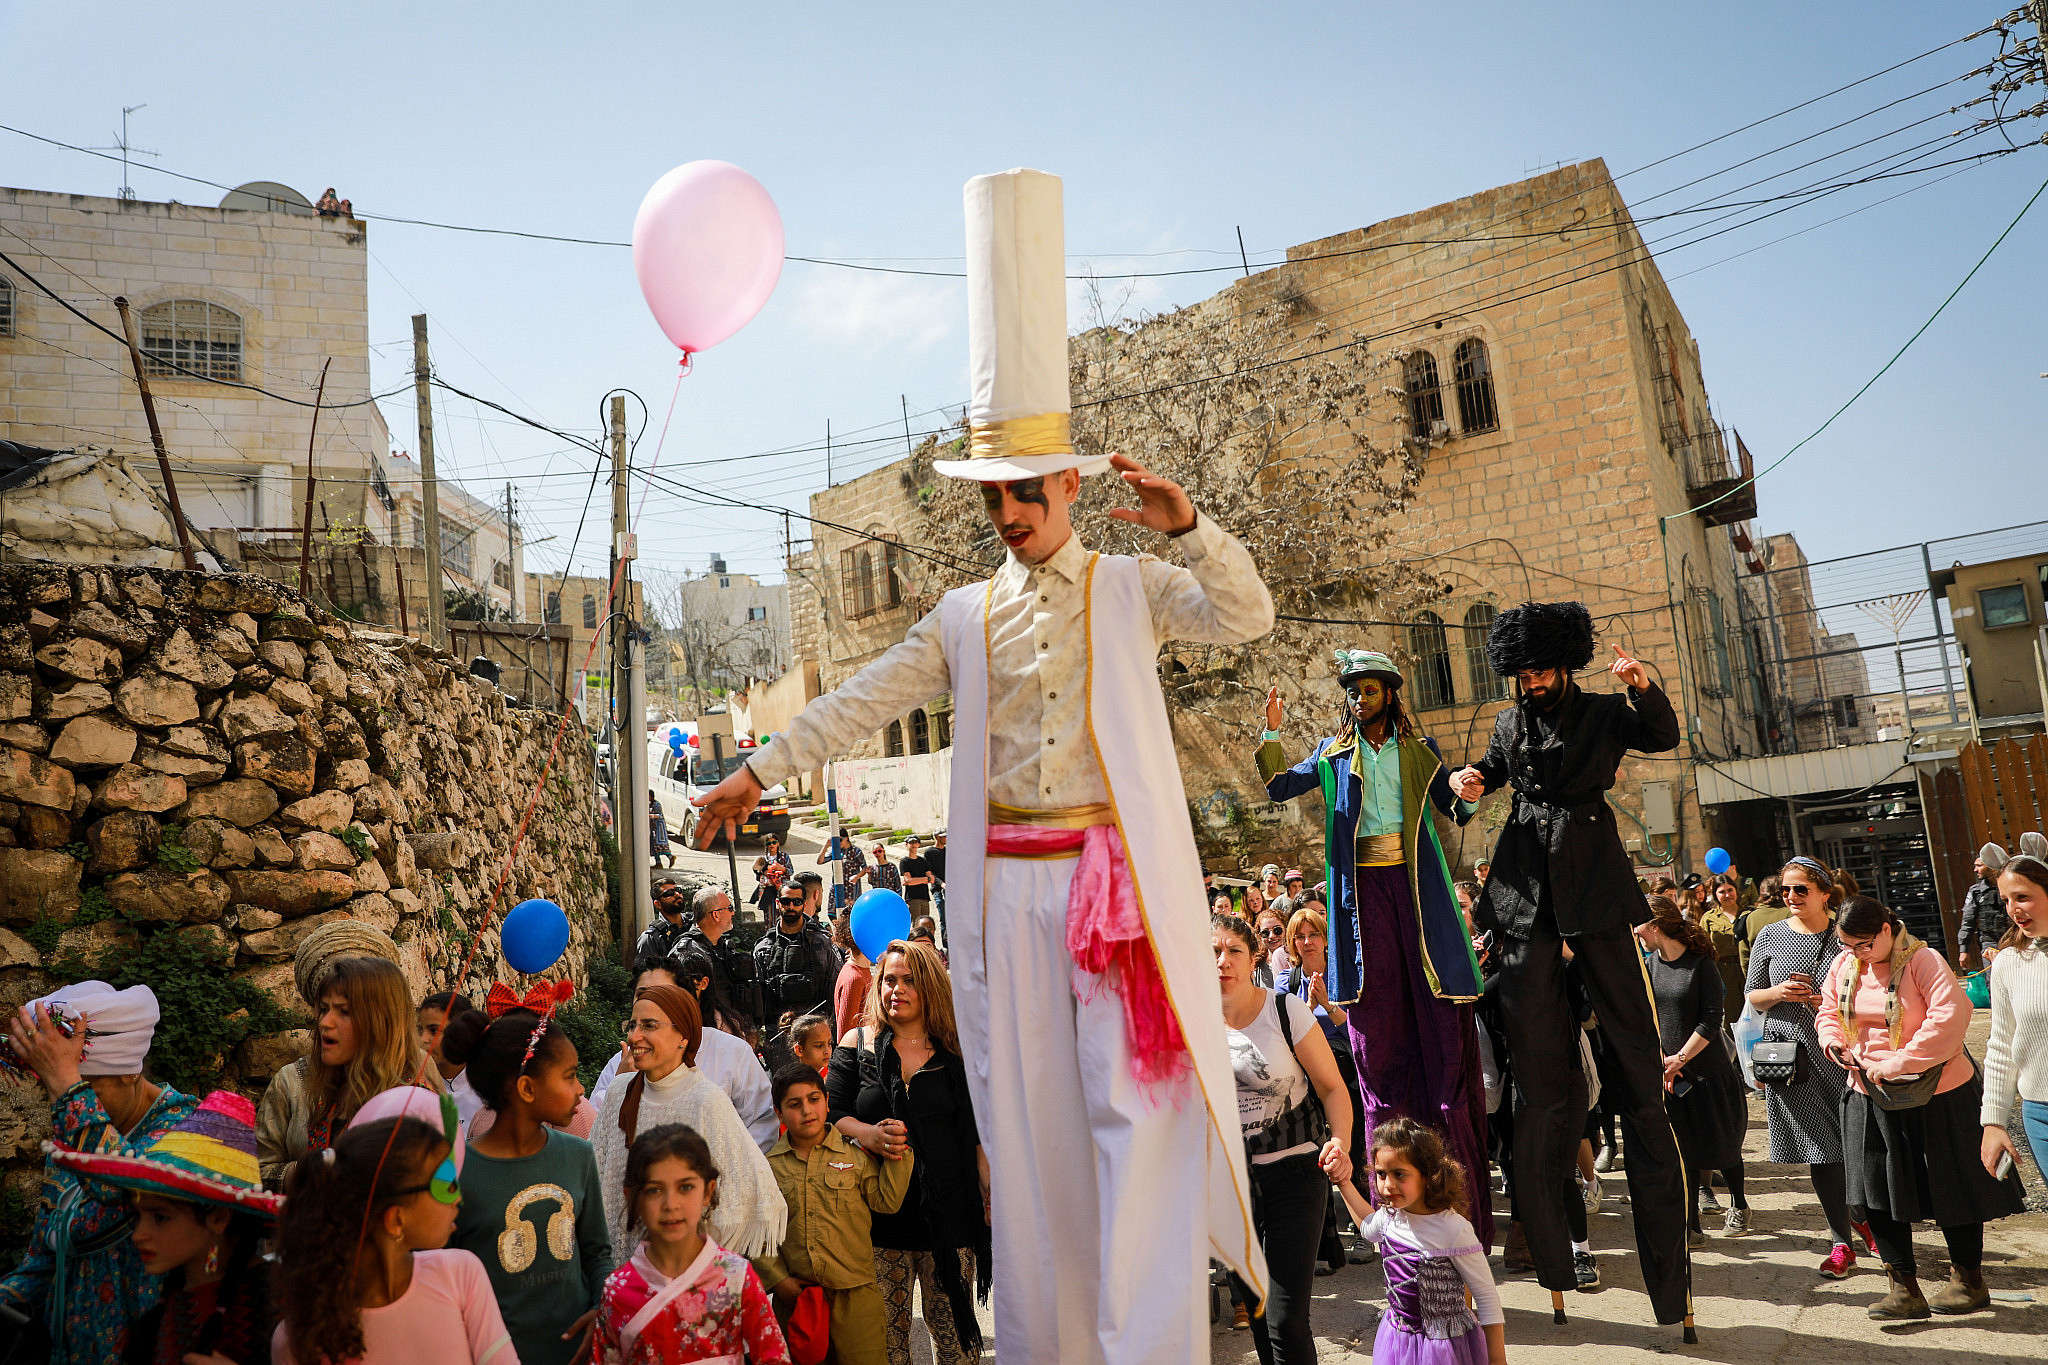 Jewish settlers wearing costumes take part in the annual parade marking the Jewish holiday of Purim in the occupied West Bank city of Hebron, March 10, 2020. (Yonatan Sindel/Flash90)